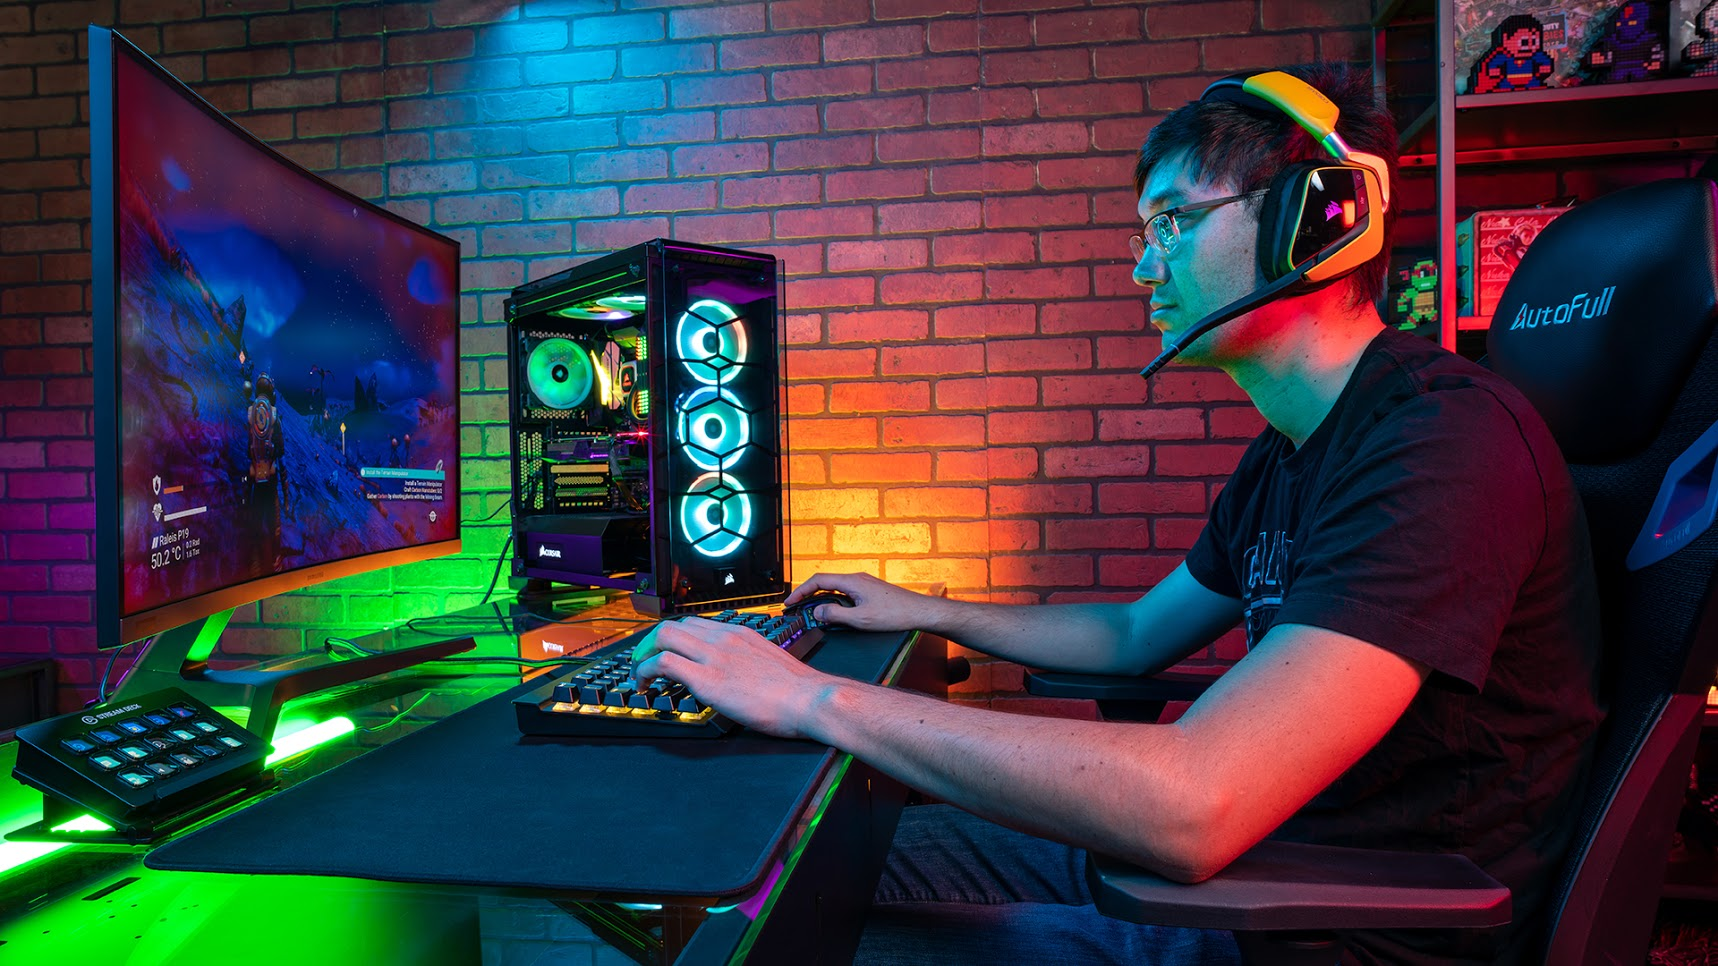 How to choose the best wireless router for gaming - Newegg Insider